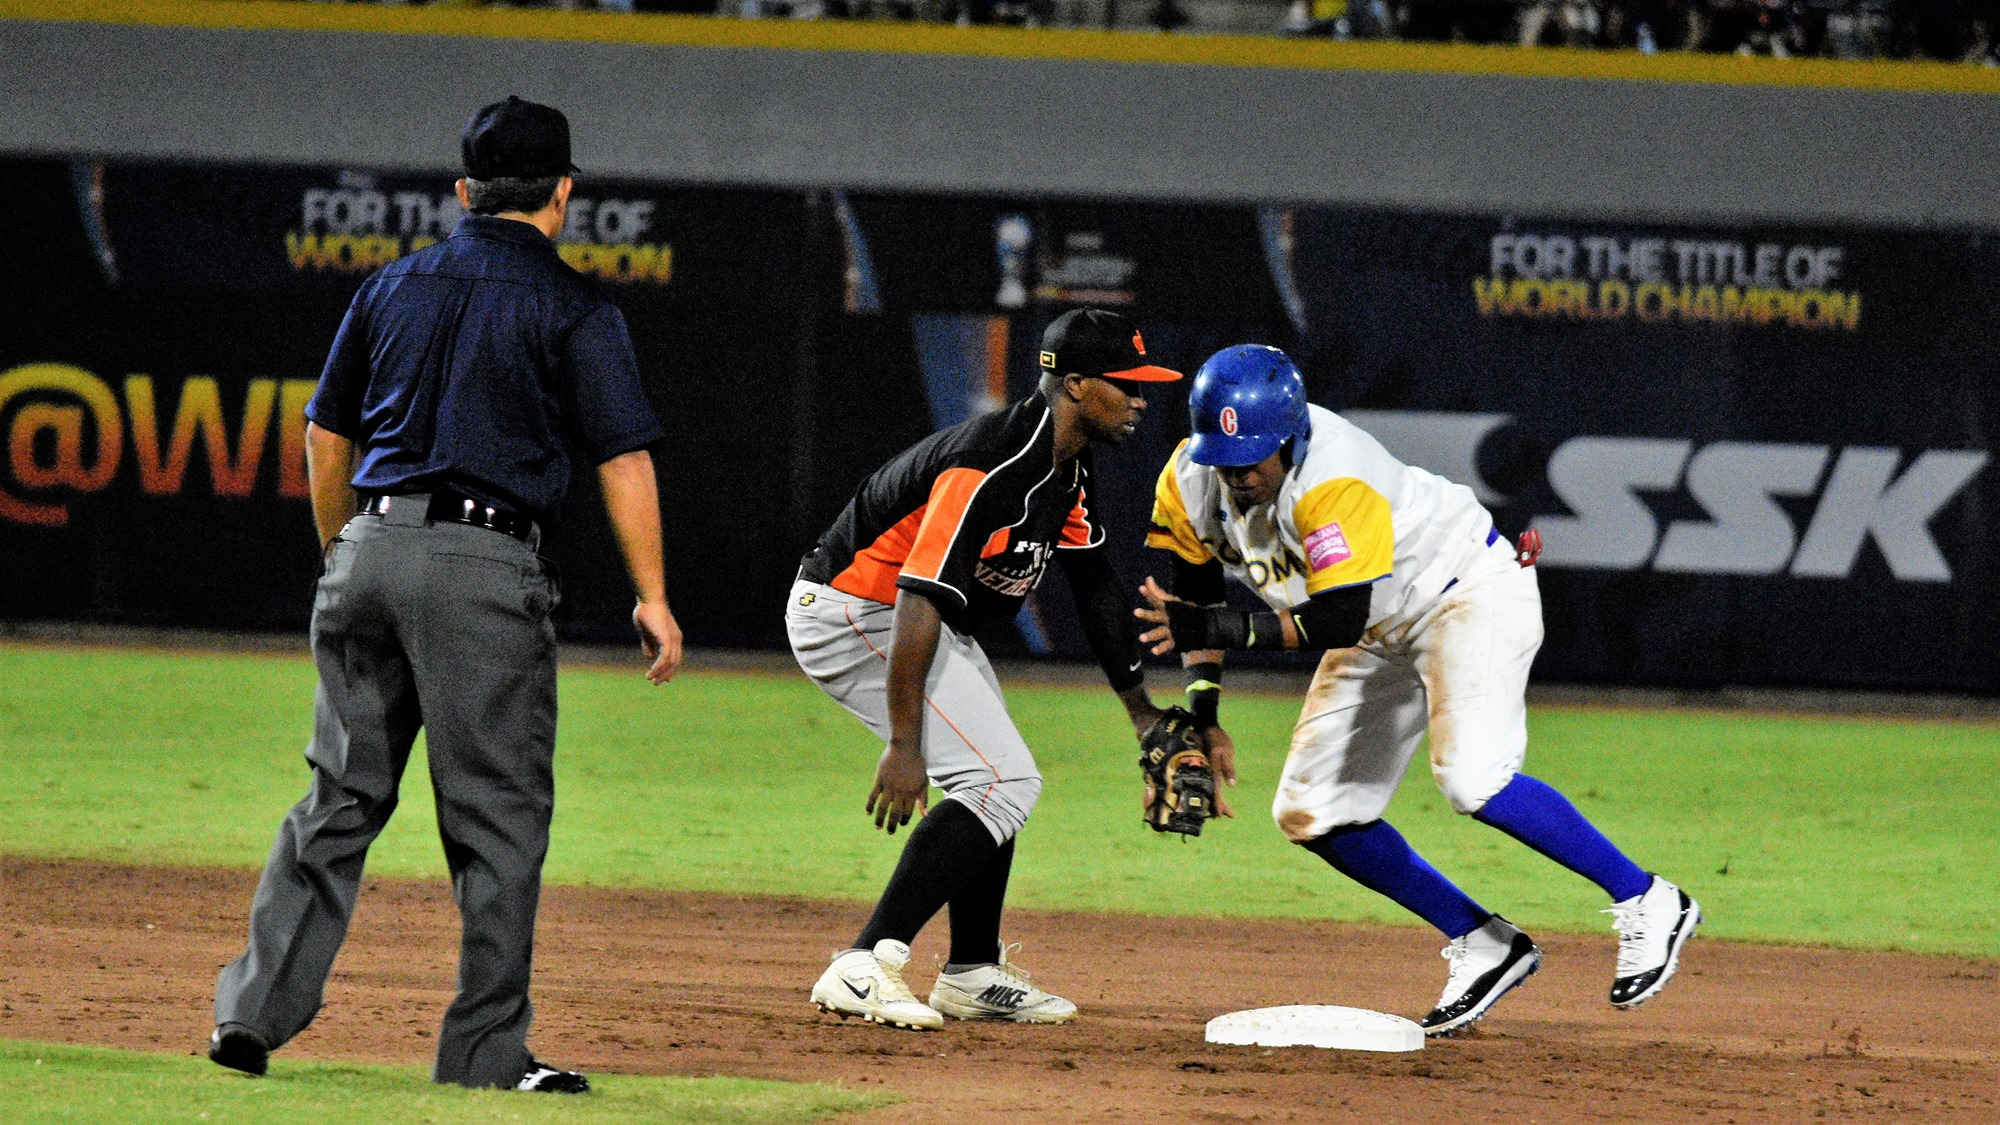 Juan Zabala runs the bases, Francinel Martina defends second base